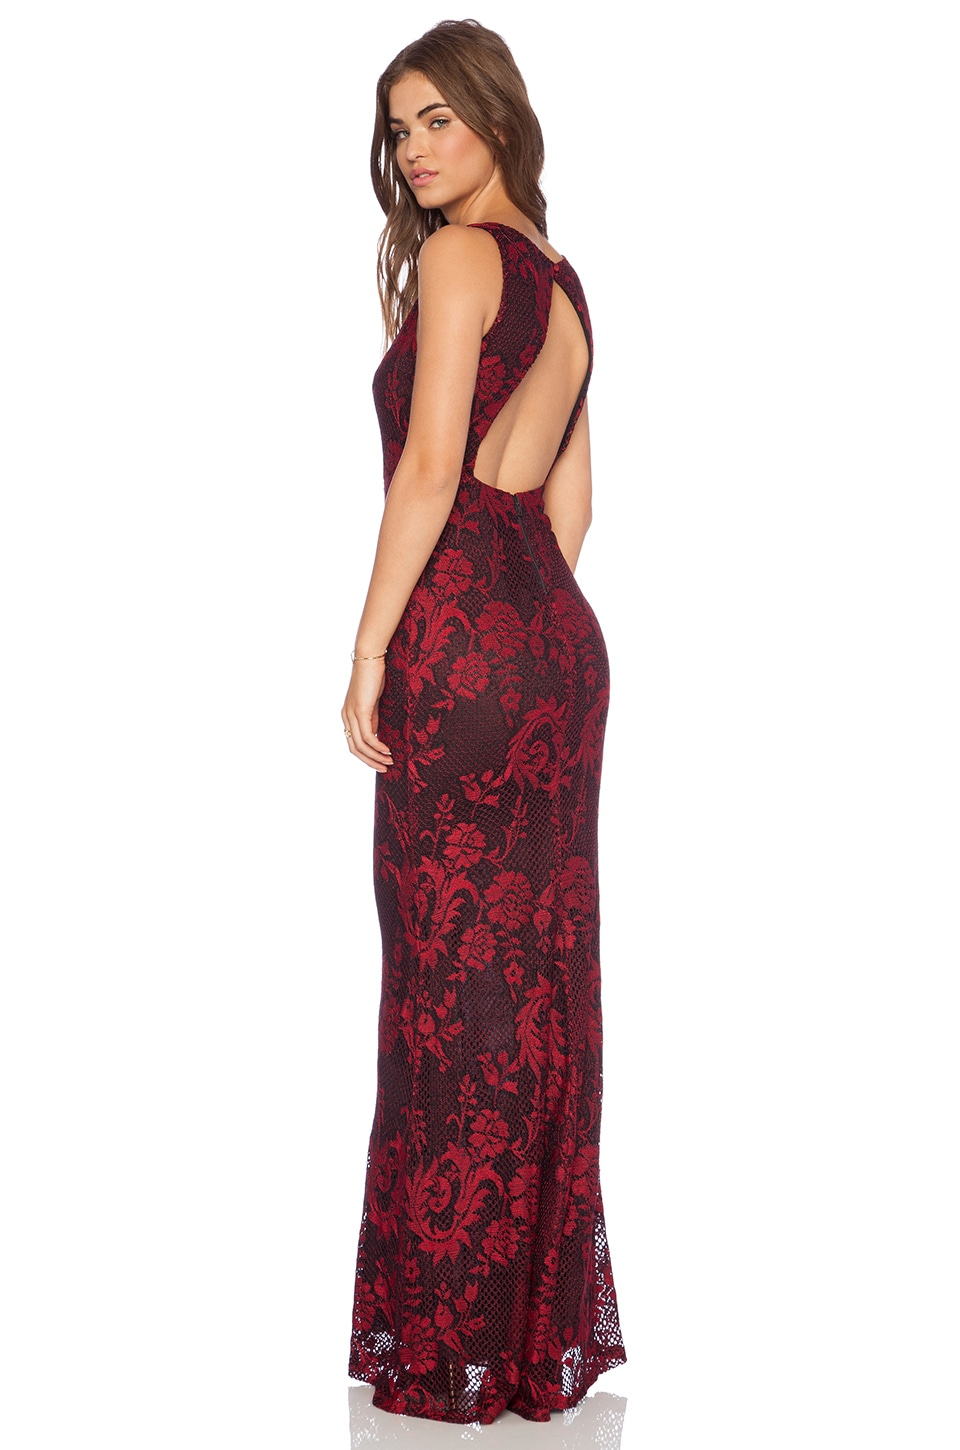 Alice + Olivia Veda Open Back Maxi Dress in Red & Black